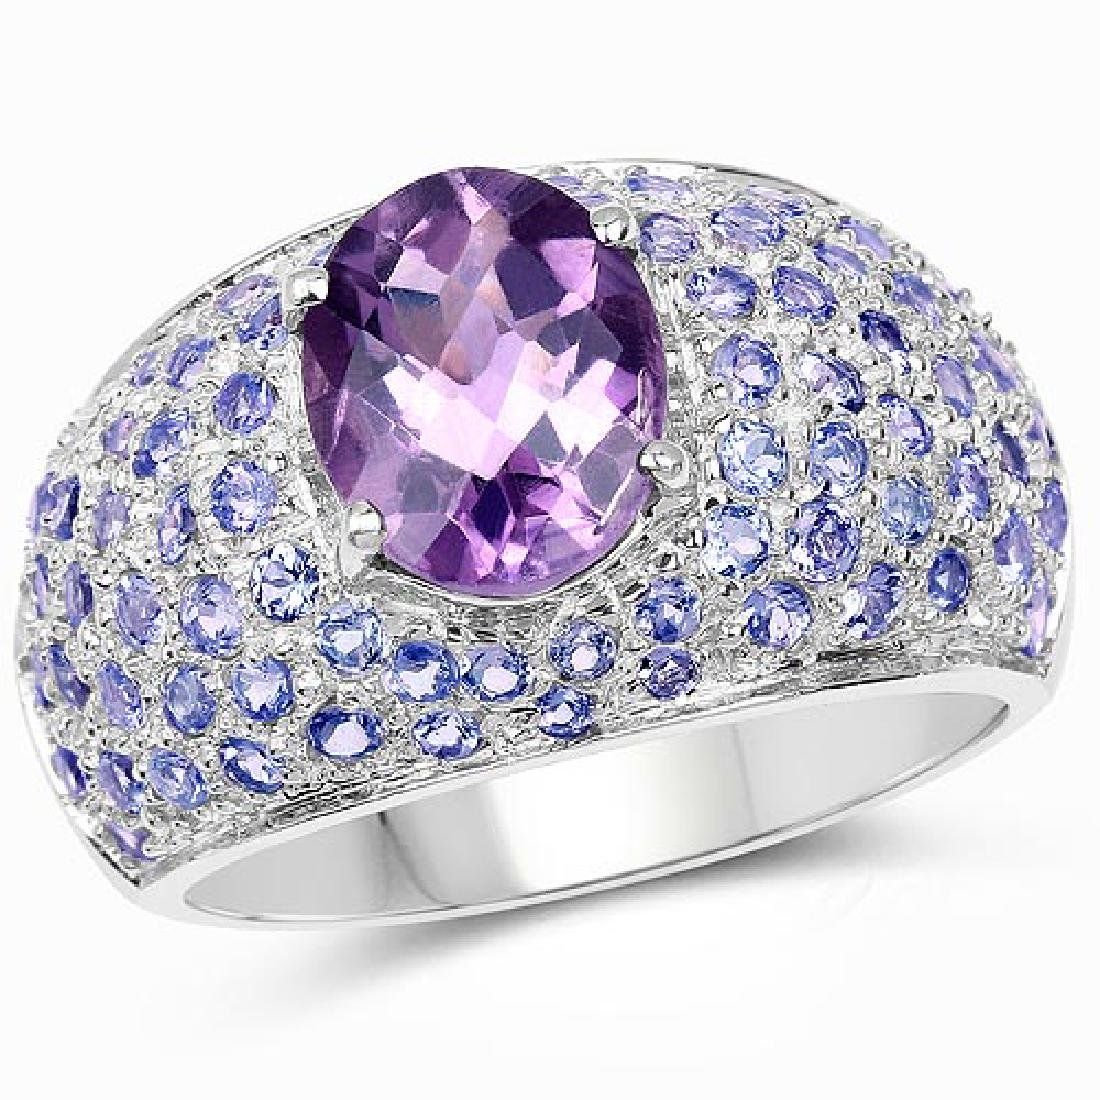 4.21 Carat Genuine Amethyst and Tanzanite .925 Sterling